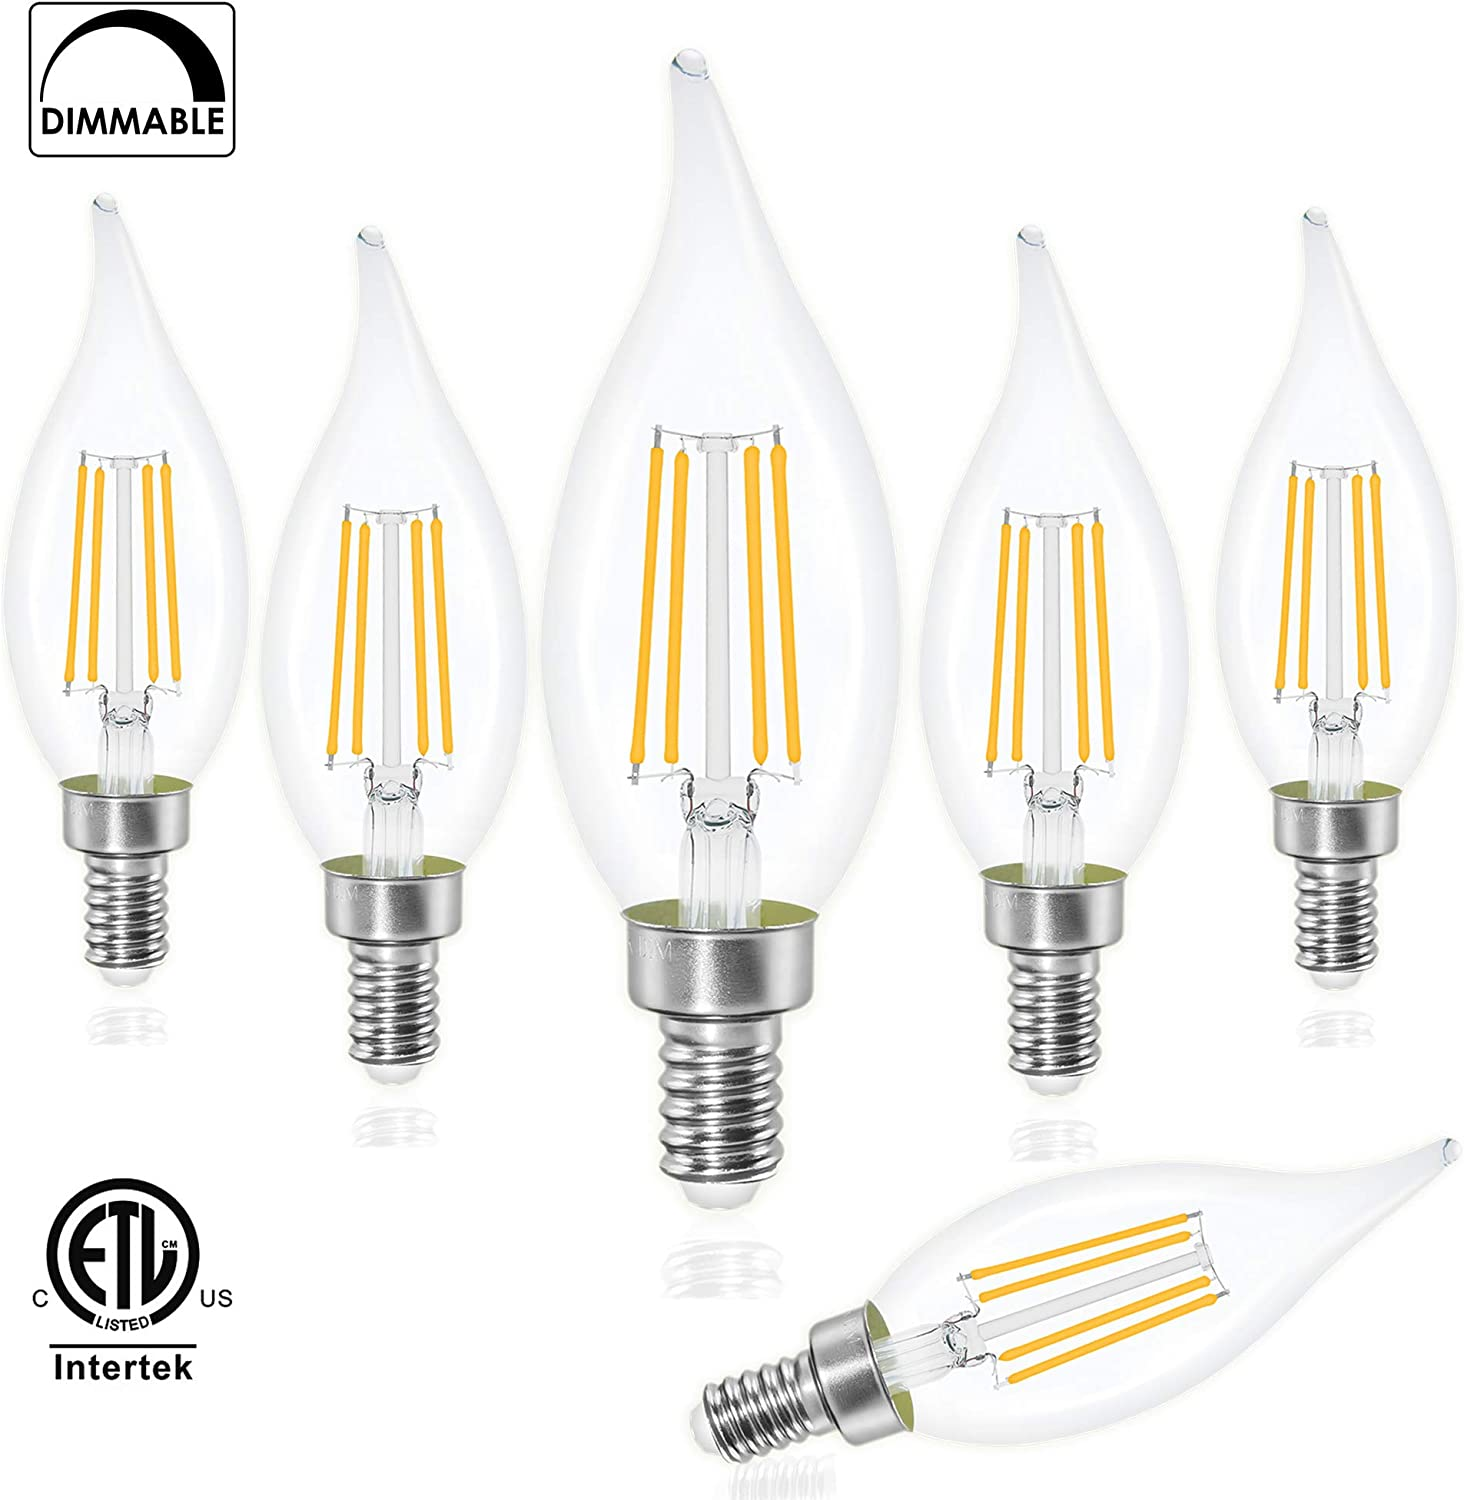 4000K Daylight White 600LM CA11 Flame Tip Vintage LED Filament Candle Bulb with Decorative Candelabra Base LED Chandelier Light Bulbs 6W 12-Pack E12 LED Candelabra Bulbs 60W Equivalent Dimmable